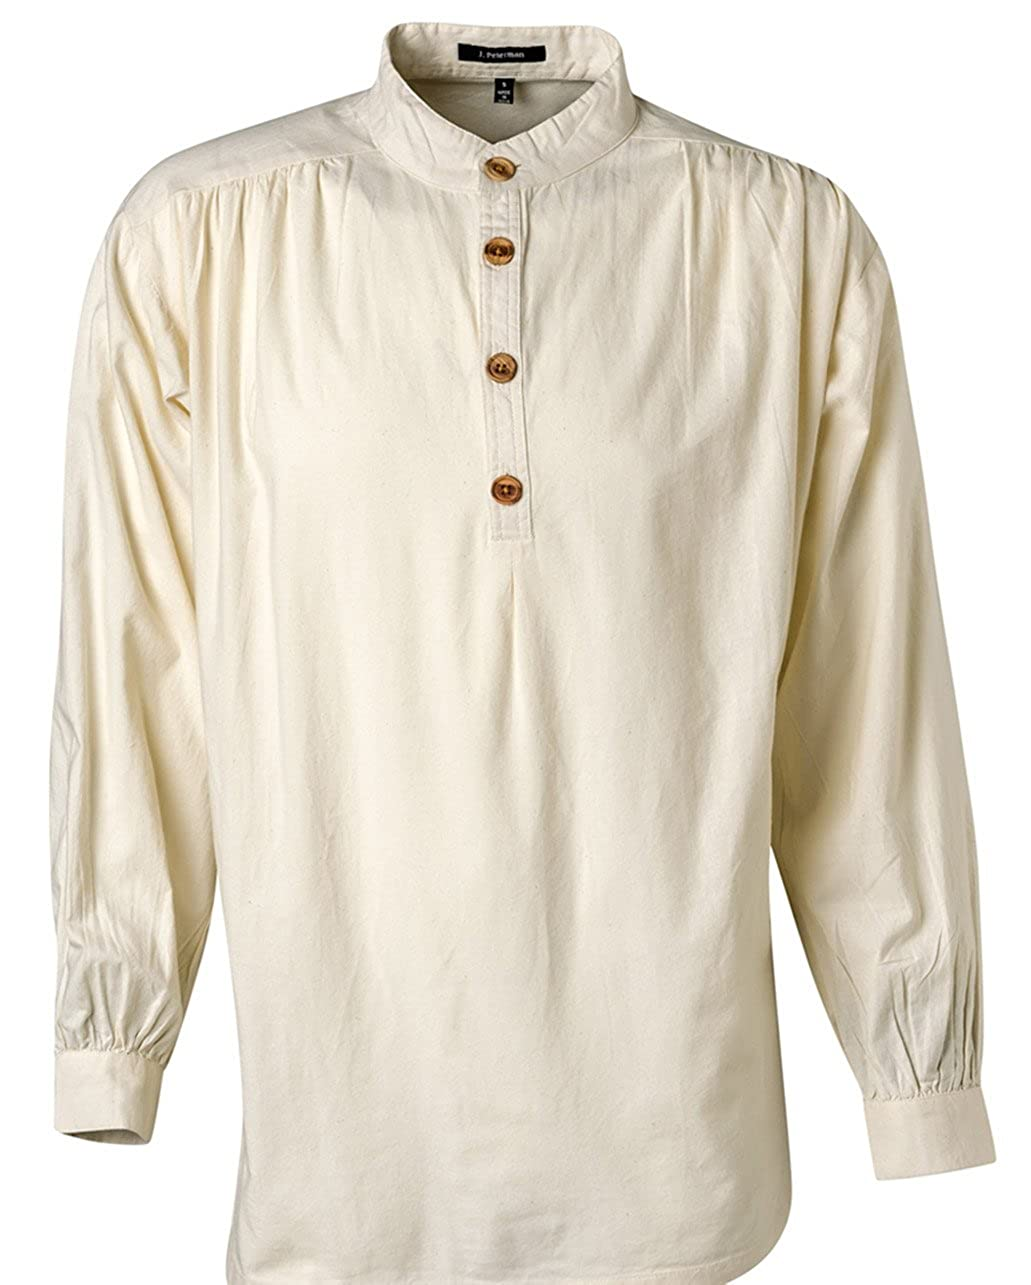 1920s Men's Dress Shirts The J. Peterman Shirt $44.85 AT vintagedancer.com